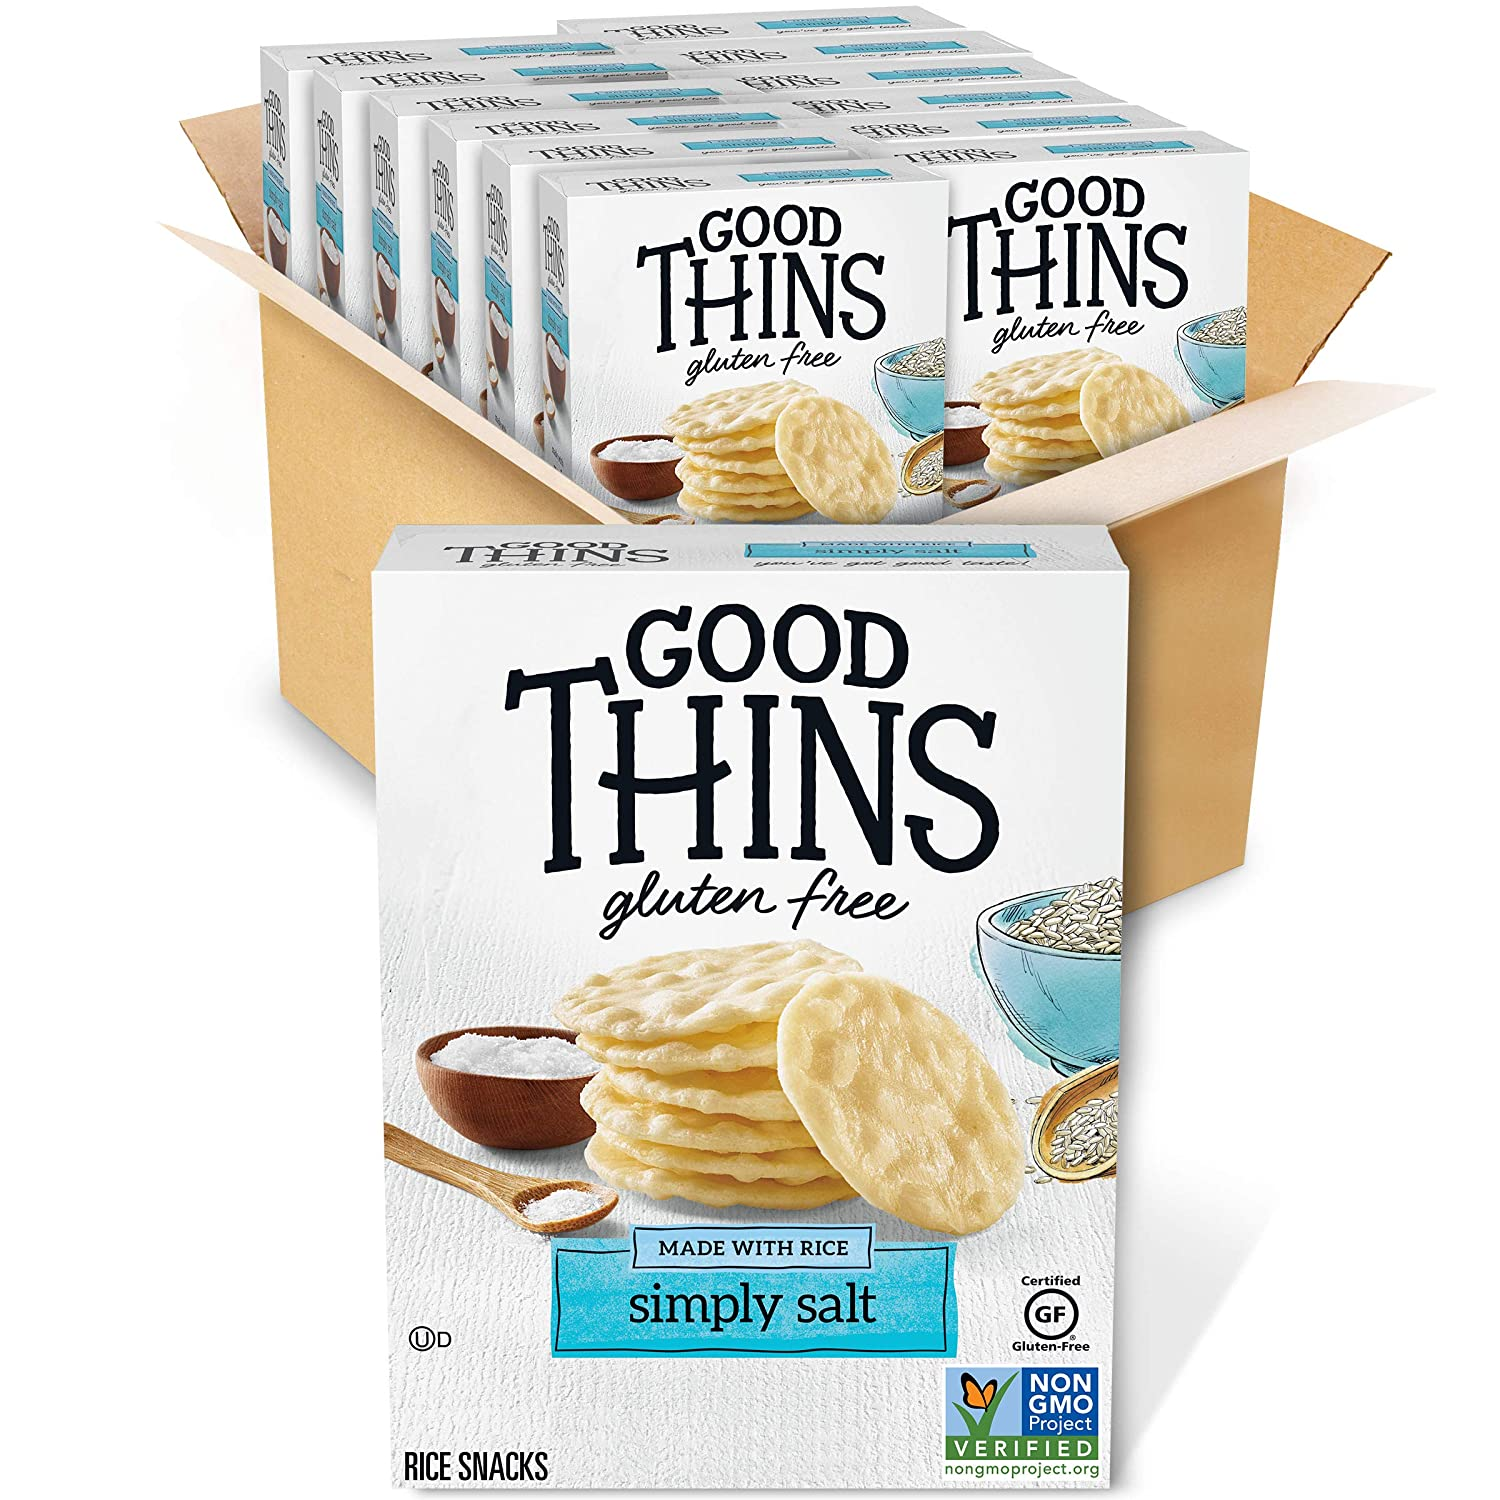 Good Thins Simply Salt Rice Snacks Gluten Free Crackers, 3.5 oz Boxes, 12 Pack (Contains Diary)